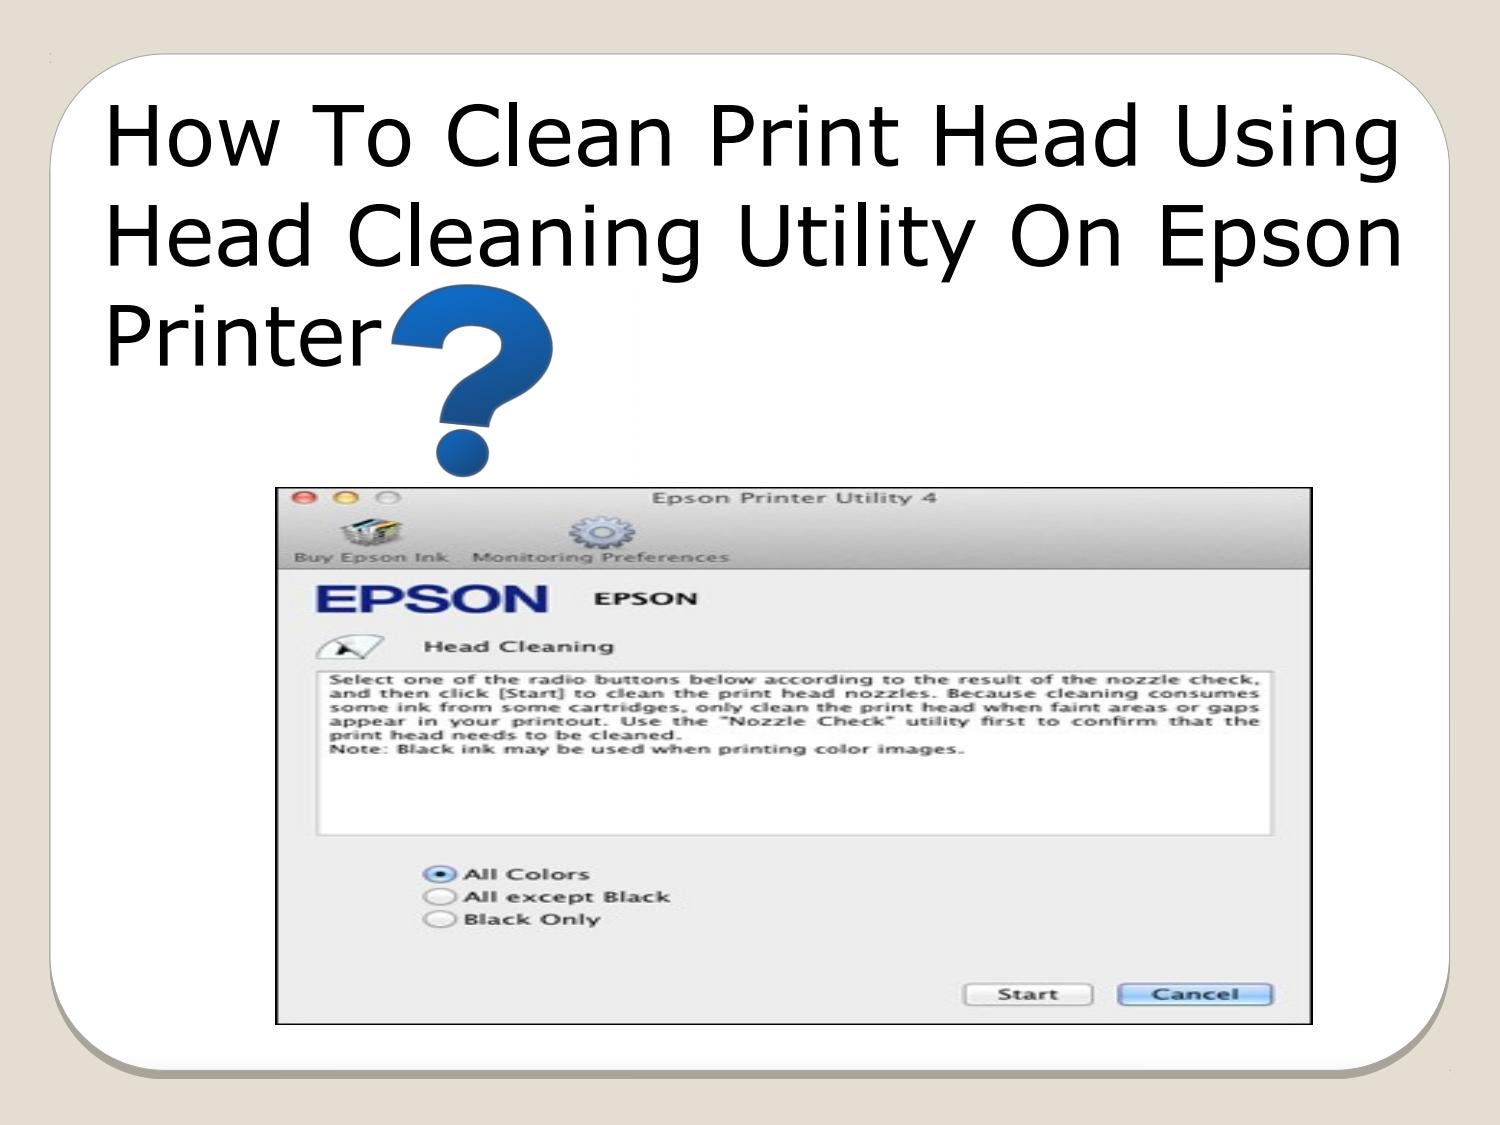 How To Clean Print Head Using Head Cleaning Utility On Epson Printer